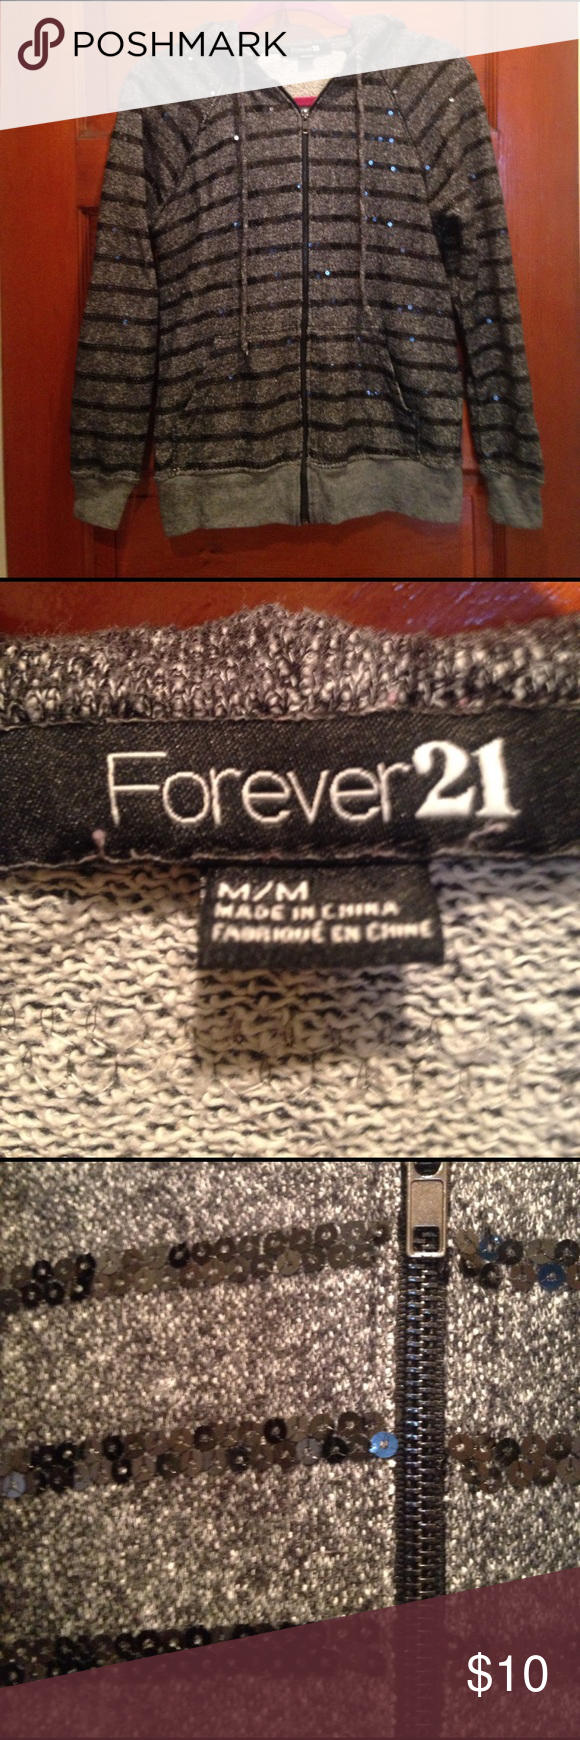 Forever 21 sequin striped hoodie Gray with black sequin stripes. In excellent condition free of tears or stains. Sequins are intact. Forever 21 Tops Sweatshirts & Hoodies